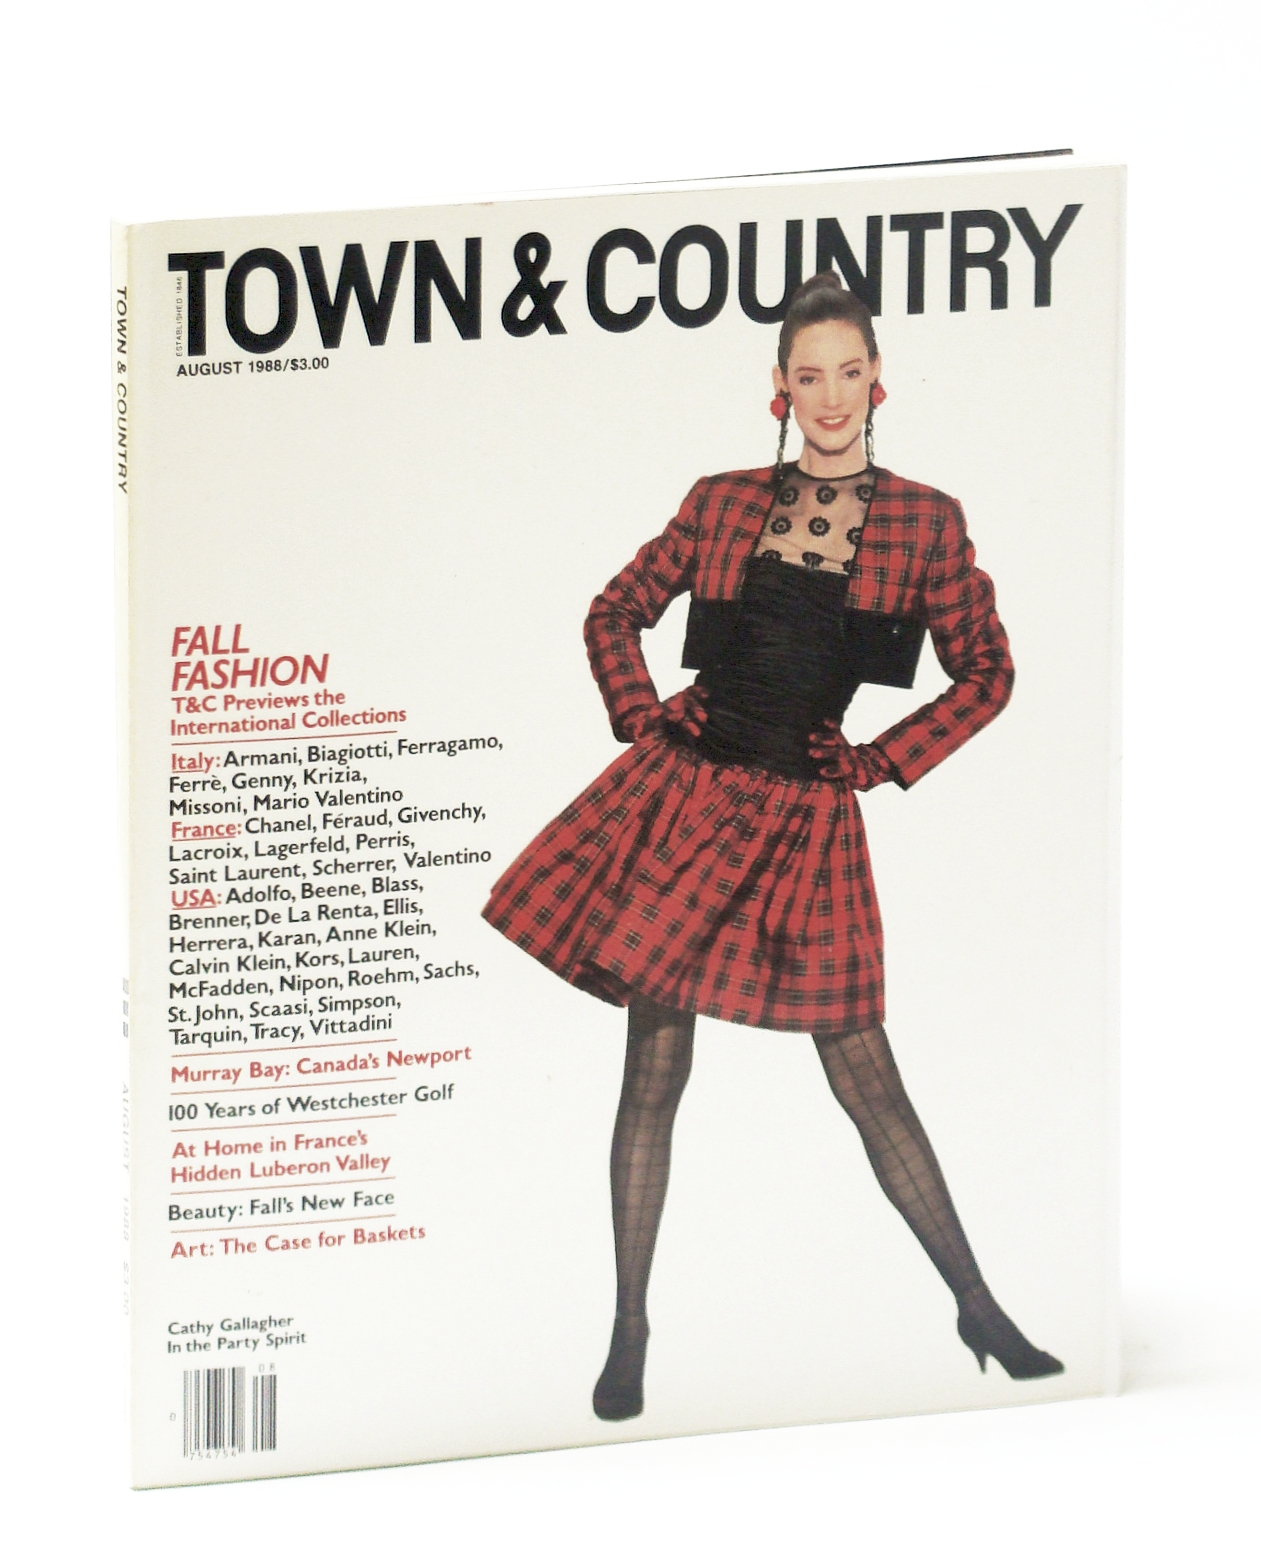 Image for Town & Country Magazine, Vol 142, No. 5099, August (Aug.) 1988 - Fall Fashion / Murray Bay - Canada's Newport